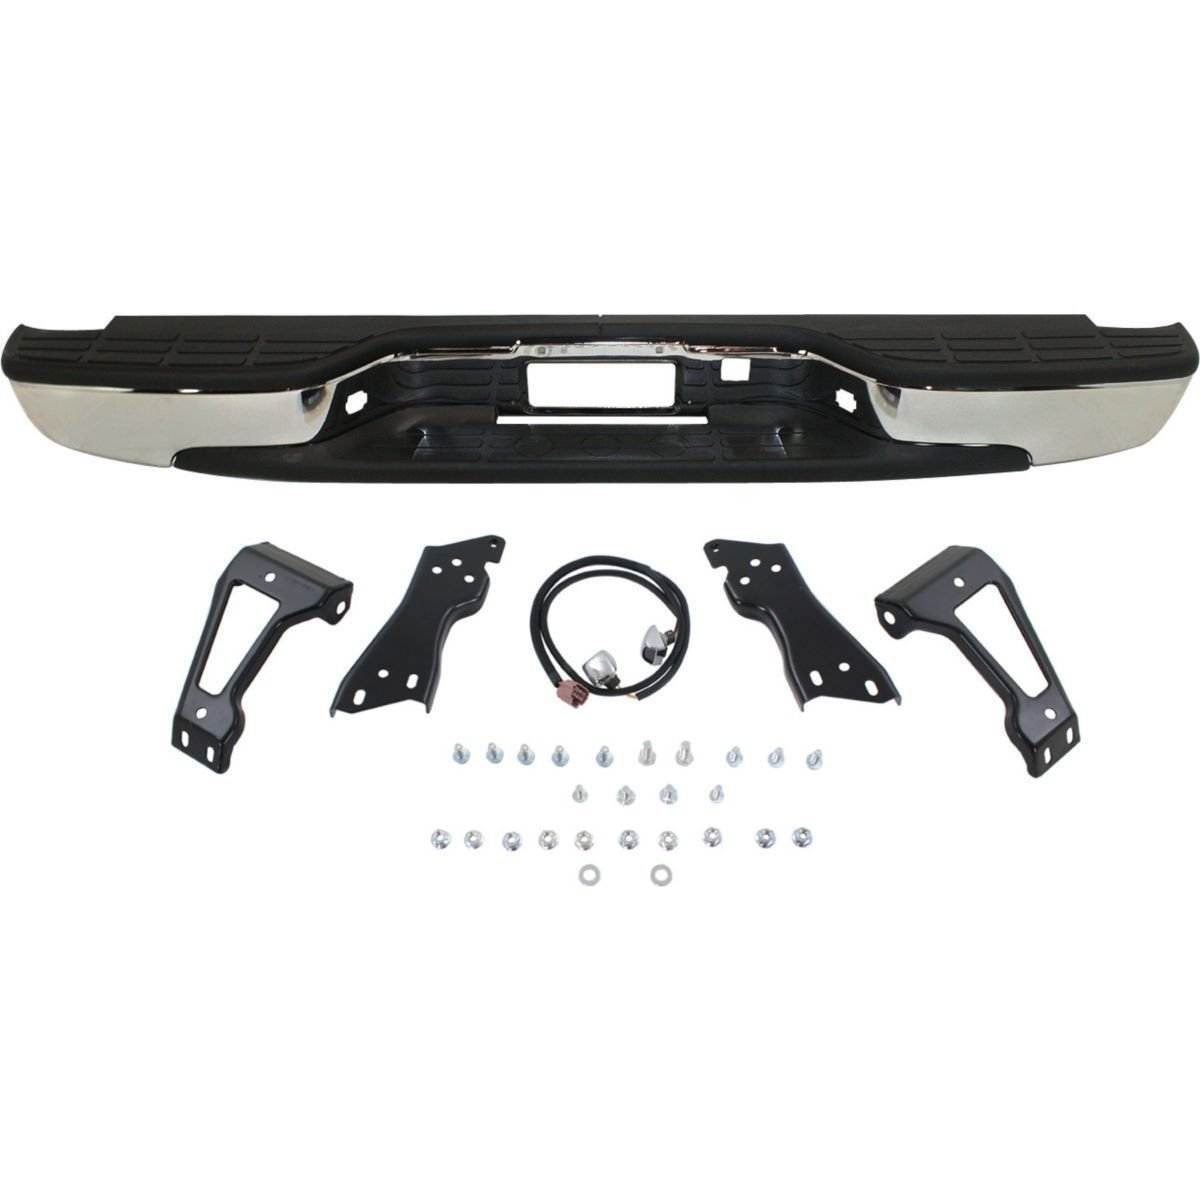 New Complete Chrome Rear Step Bumper Assembly for 1999-2006 Chevy Silverado GMC Sierra 1500 Truck GM1103122 Painted Tailgates MBI AUTO